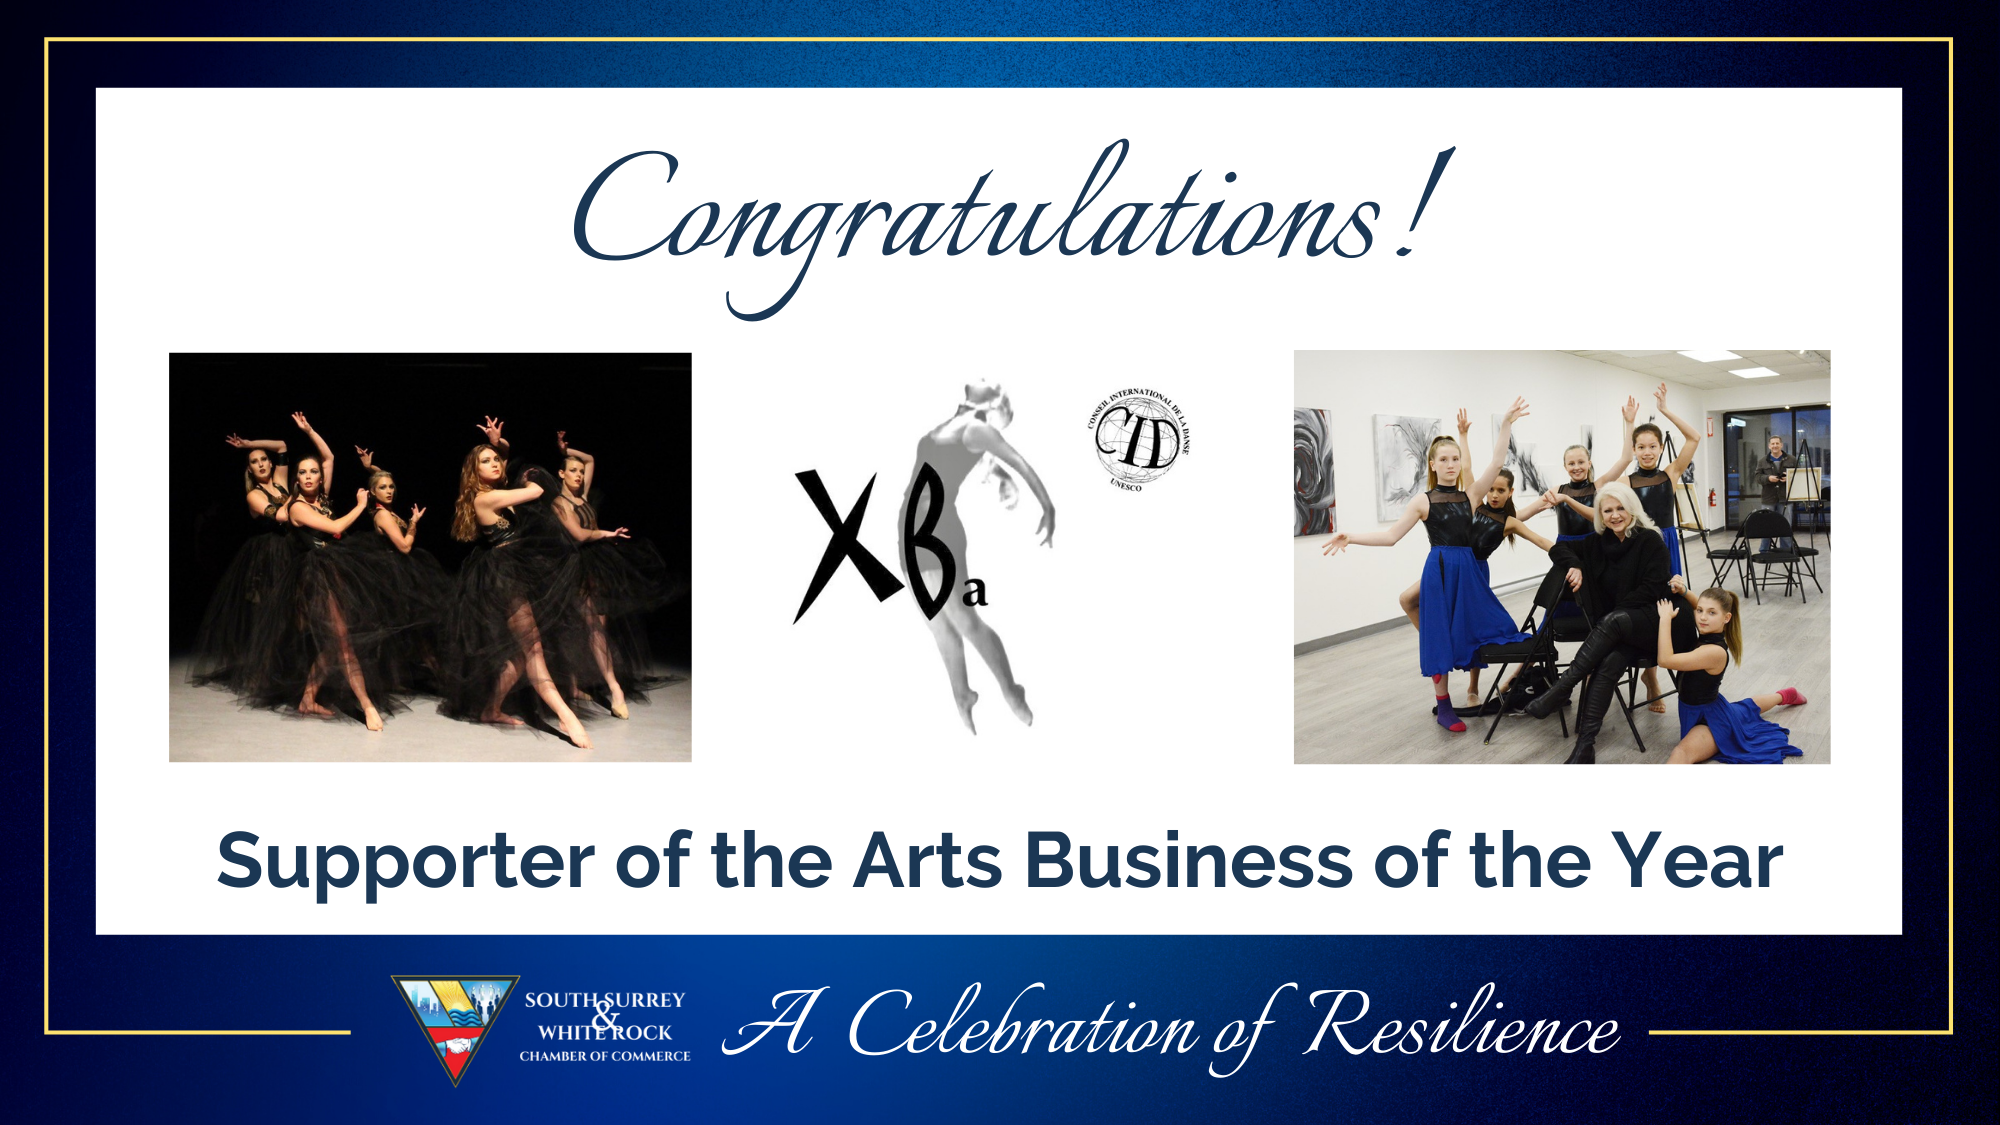 Congratulations-Supporter-of-the-Arts-Business-of-the-Year.png